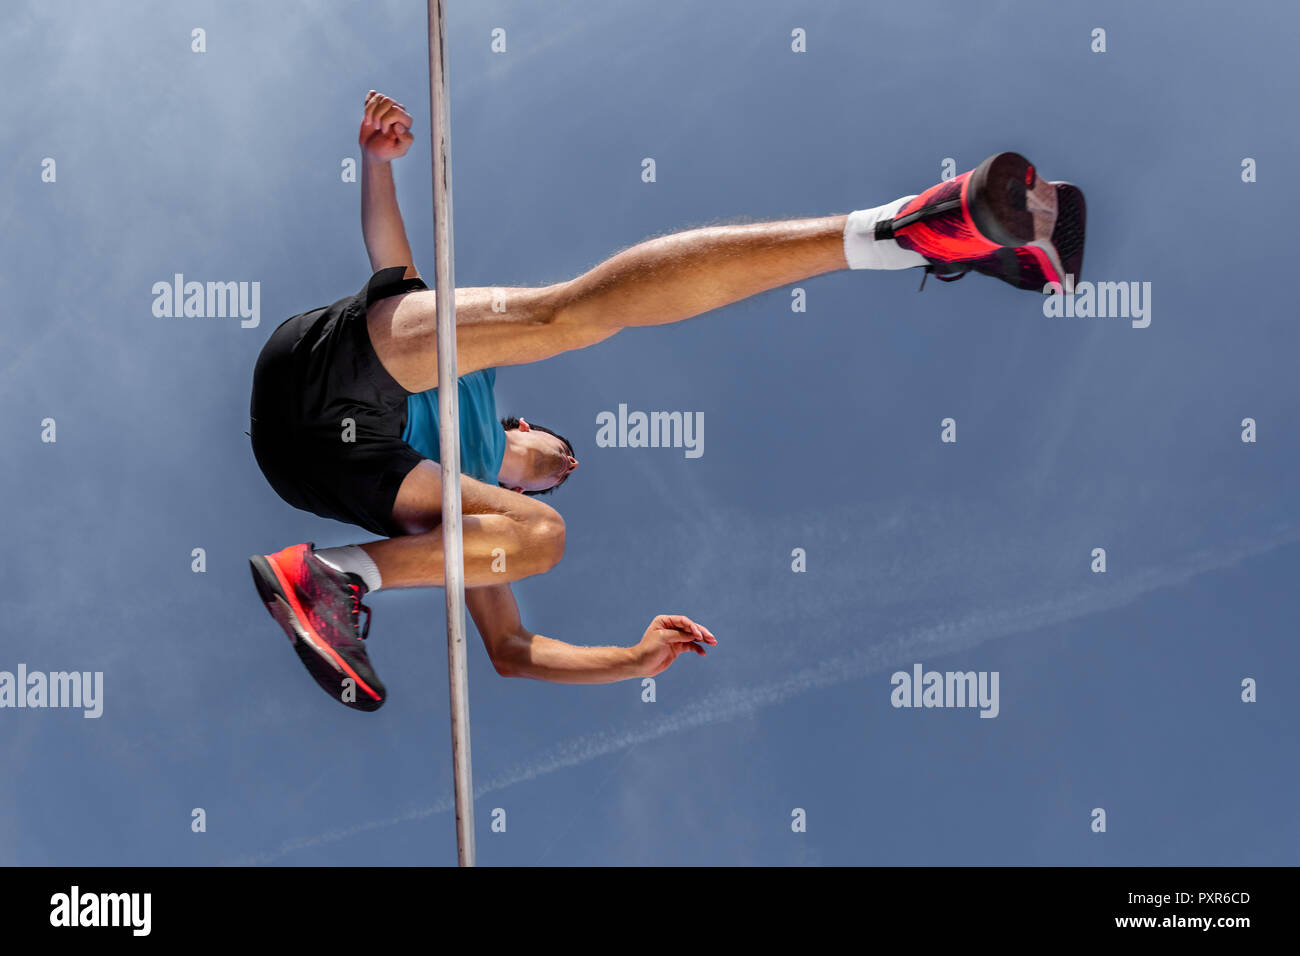 Hurdler, worm's eye view - Stock Image